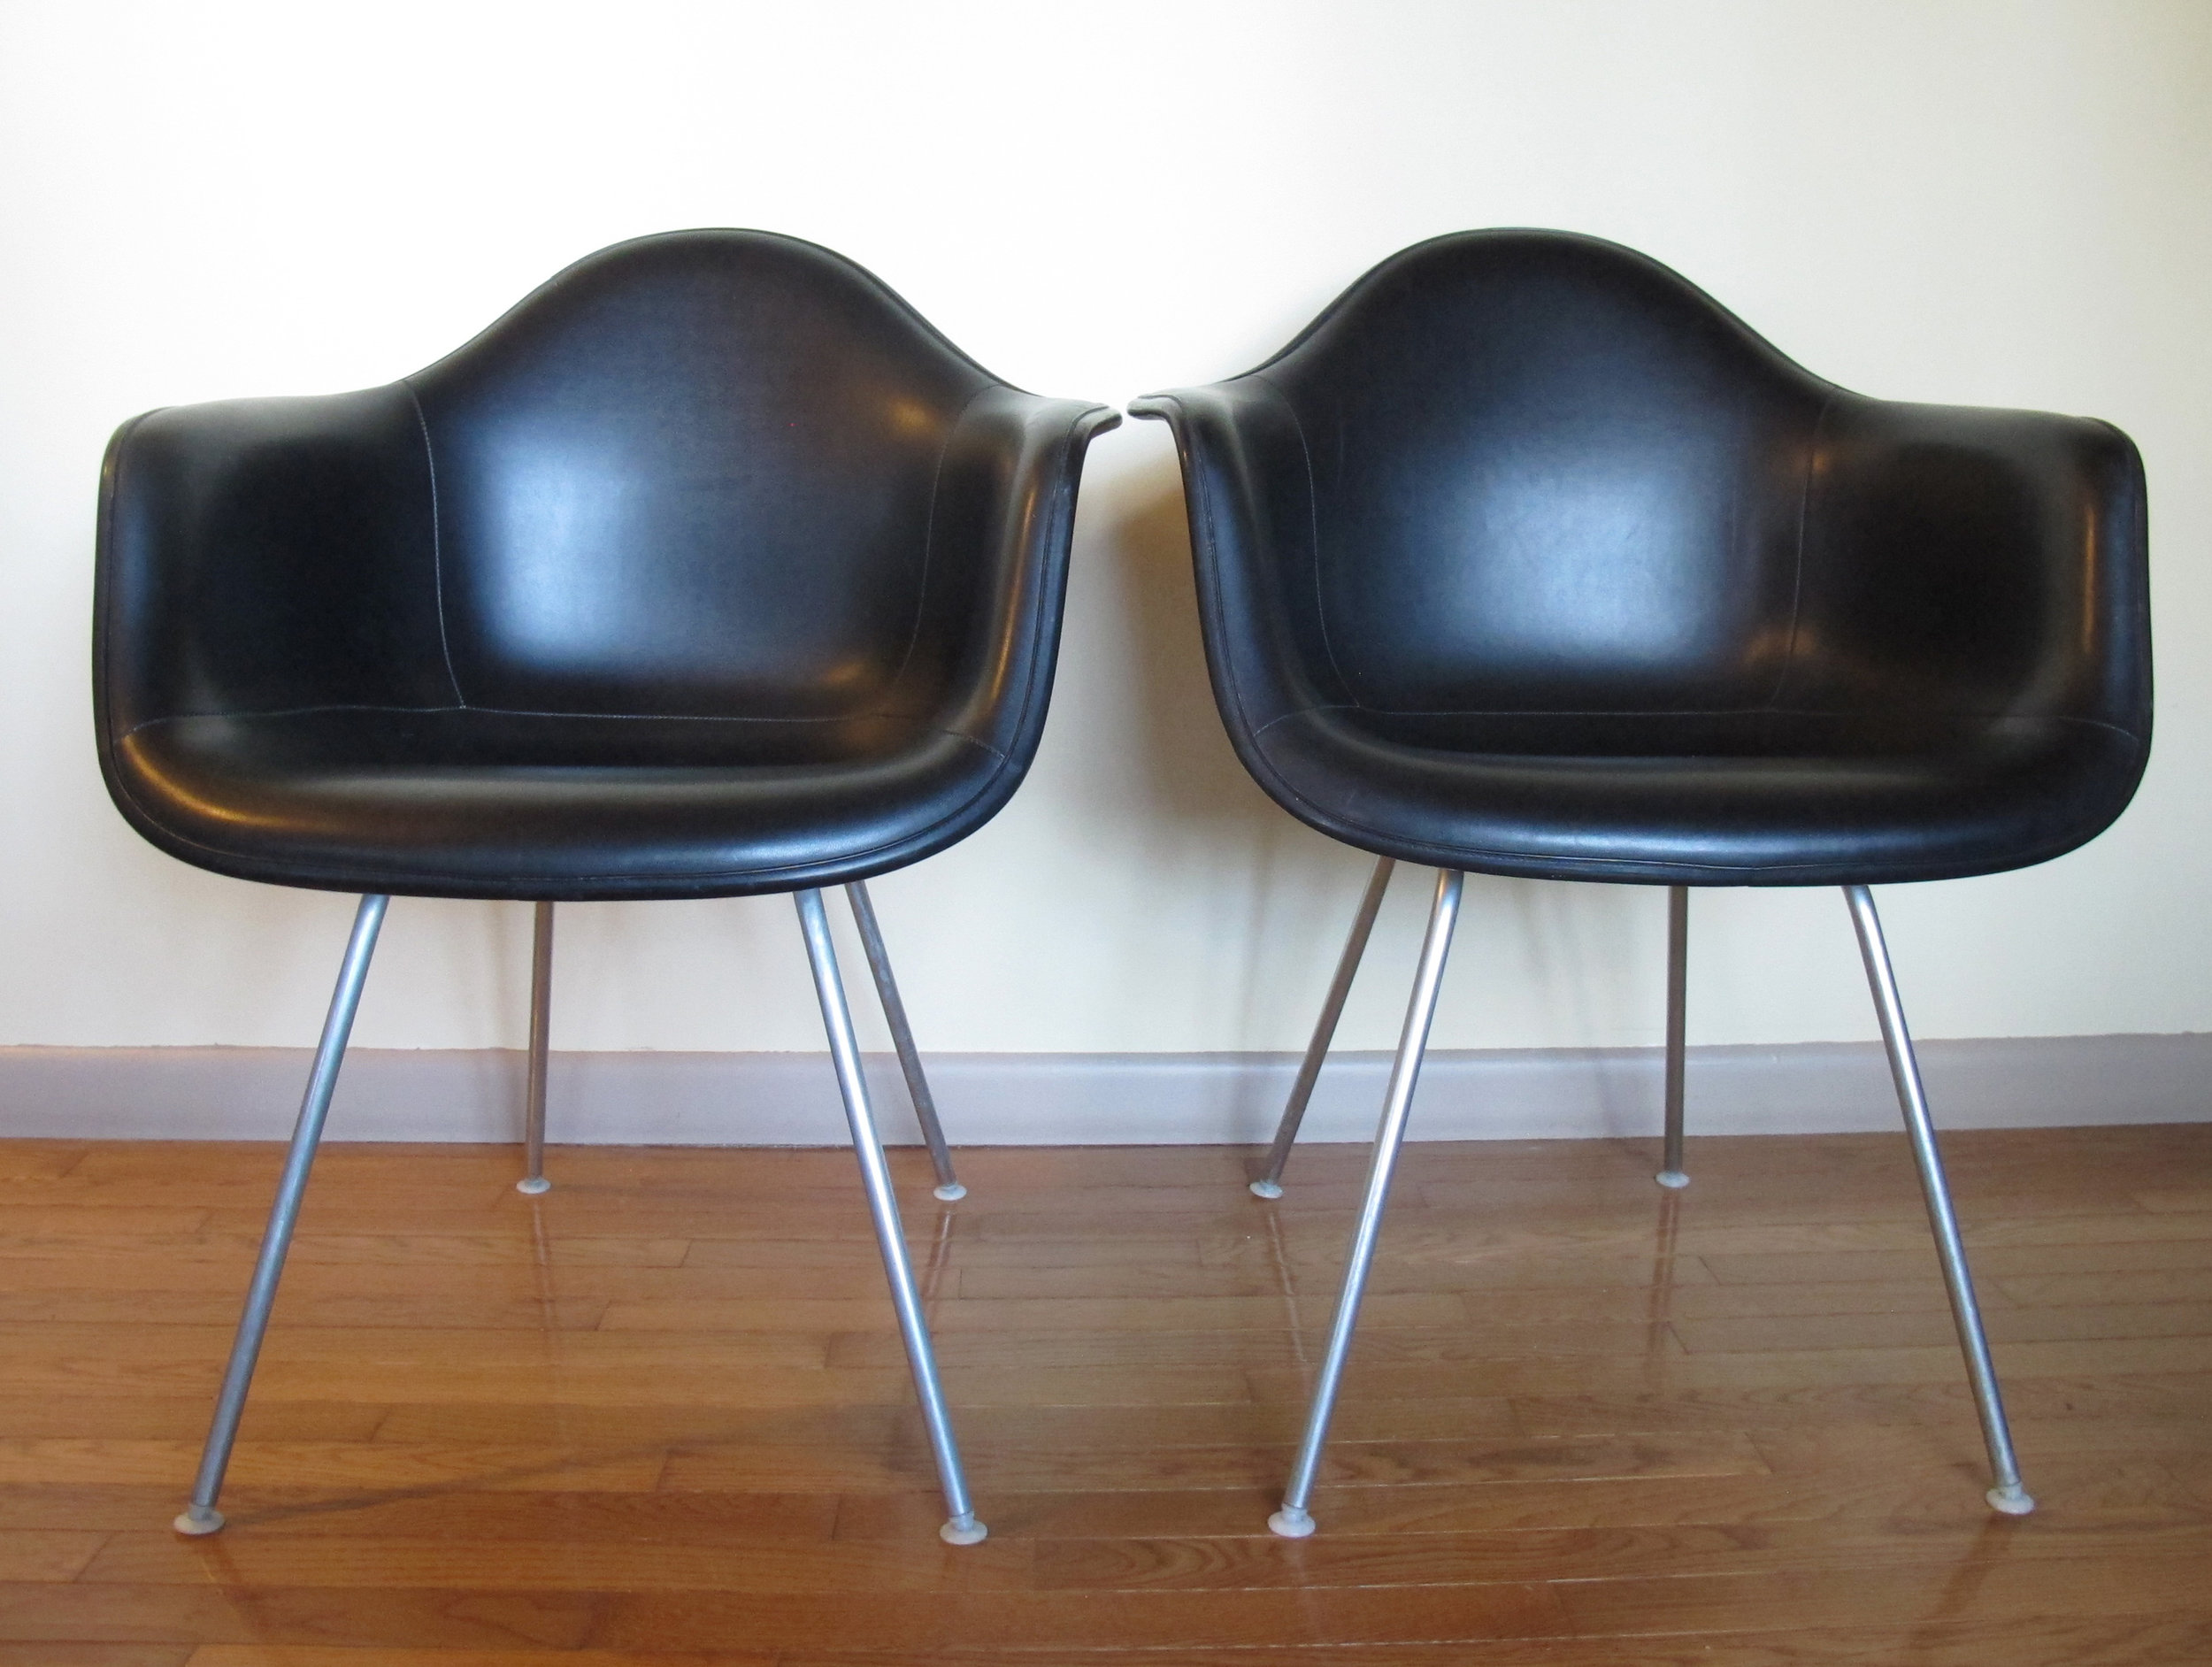 PAIR OF HERMAN MILLER EAMES SAX SHELL ARMCHAIRS